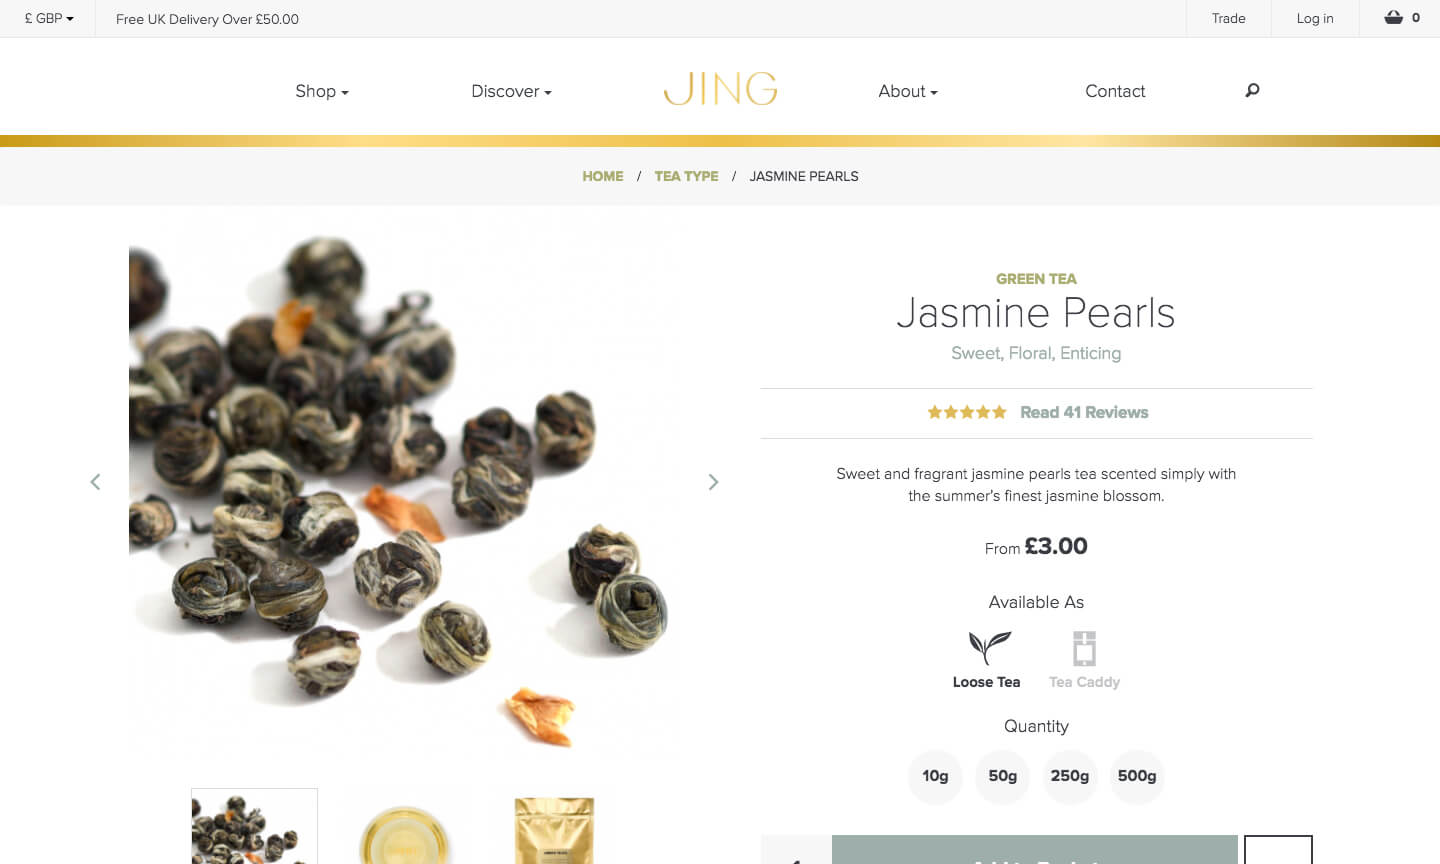 JING Tea product